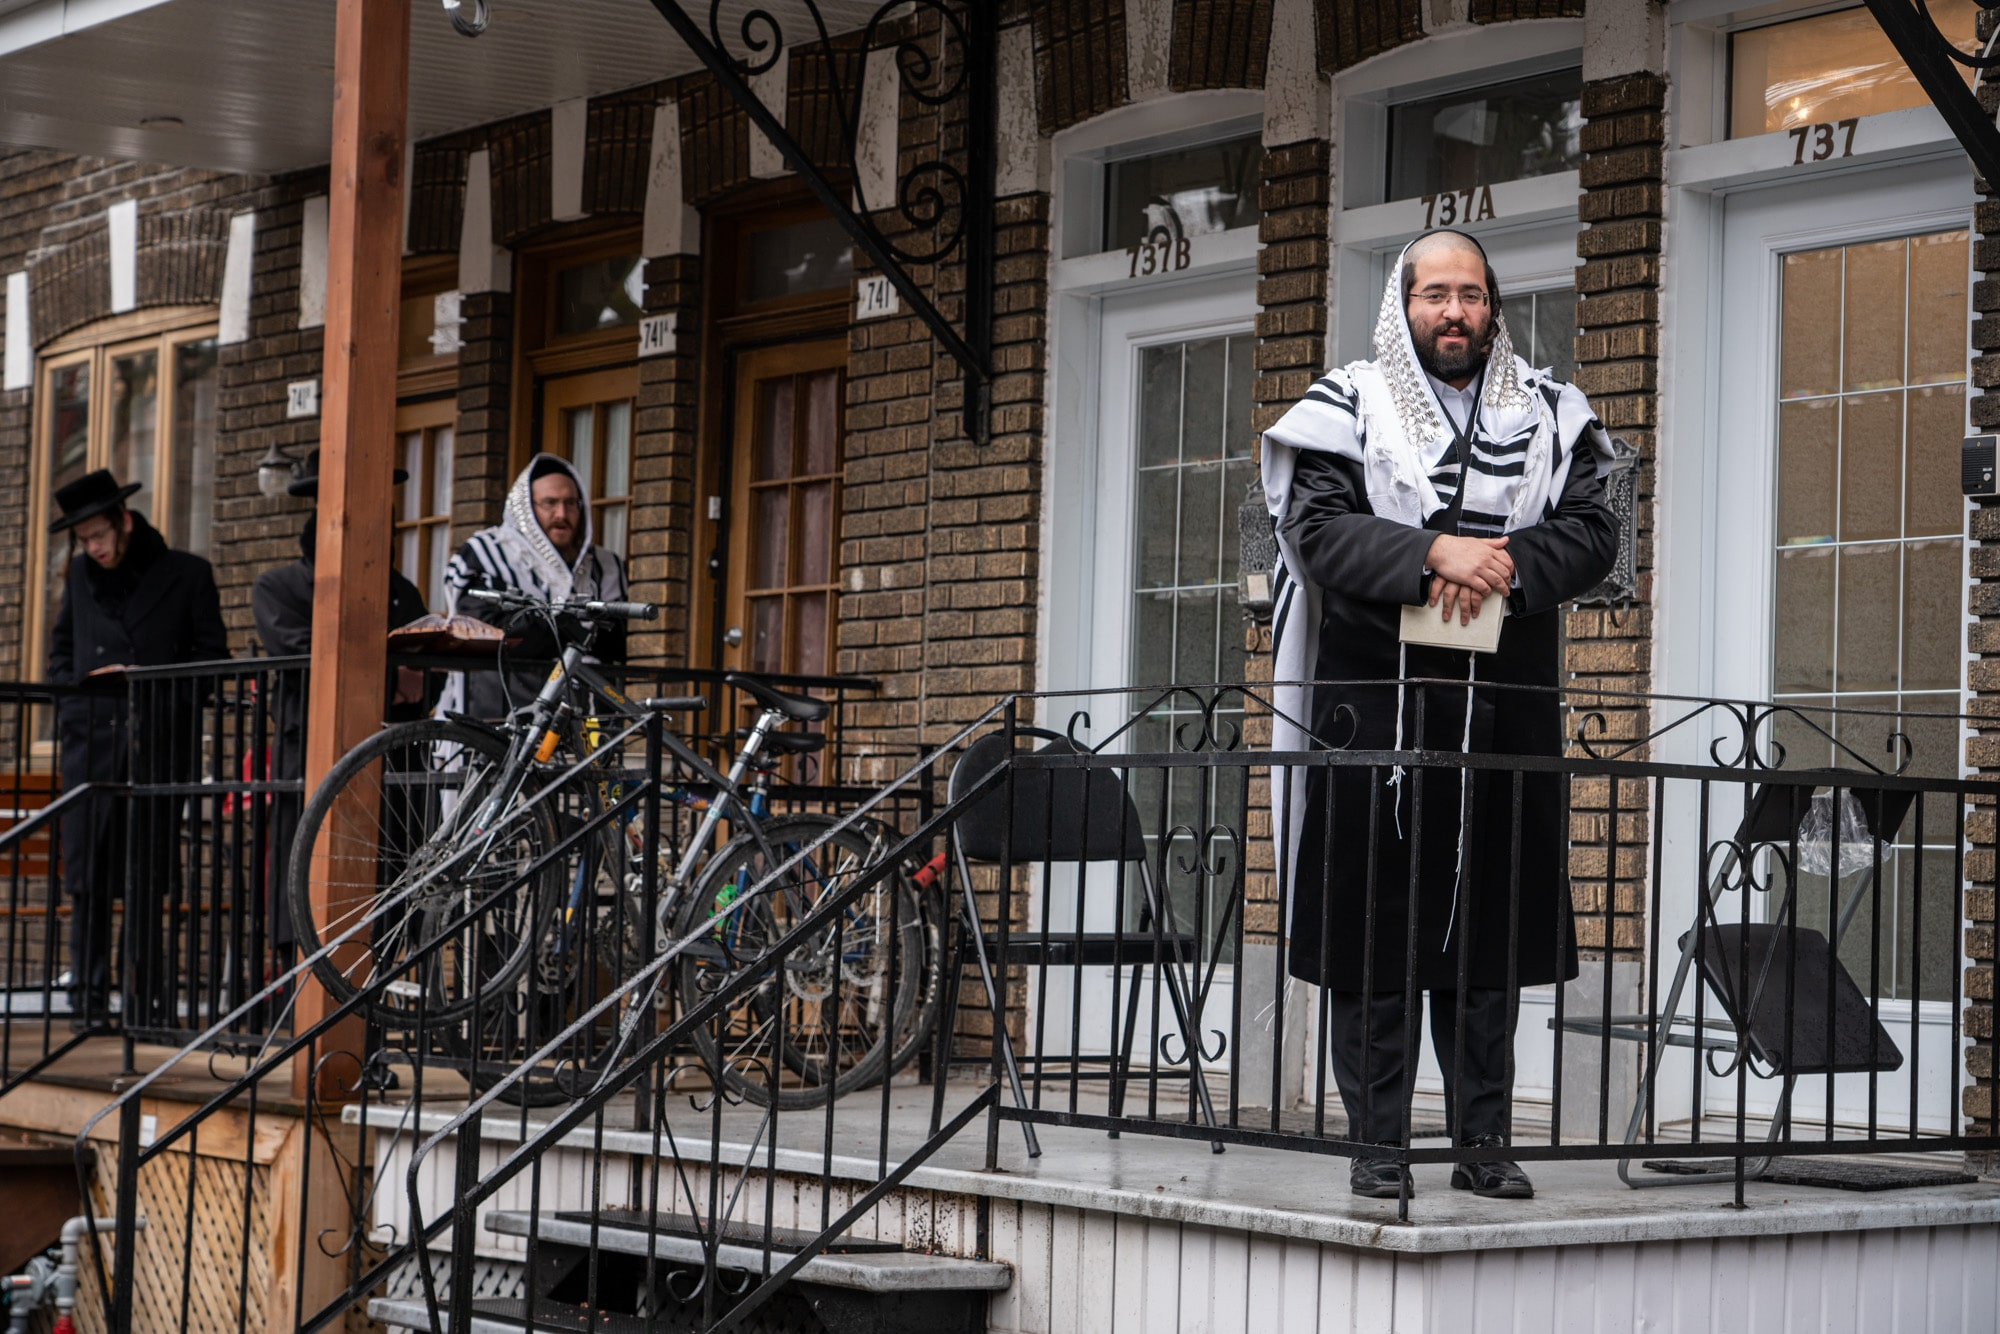 April 10, 2020 -Montreal, Canada : Hasidic Jews pray outside during Passover following the public health directive of social distancing. The directive prohibits any gathering and all places of worship for all religions have been ordered to close.The Hasidic communities have been particularly affected by the COVID-19 pandemic.Their close ties with communities in New York could be one of the reasons.(Eric Demers/Polaris)